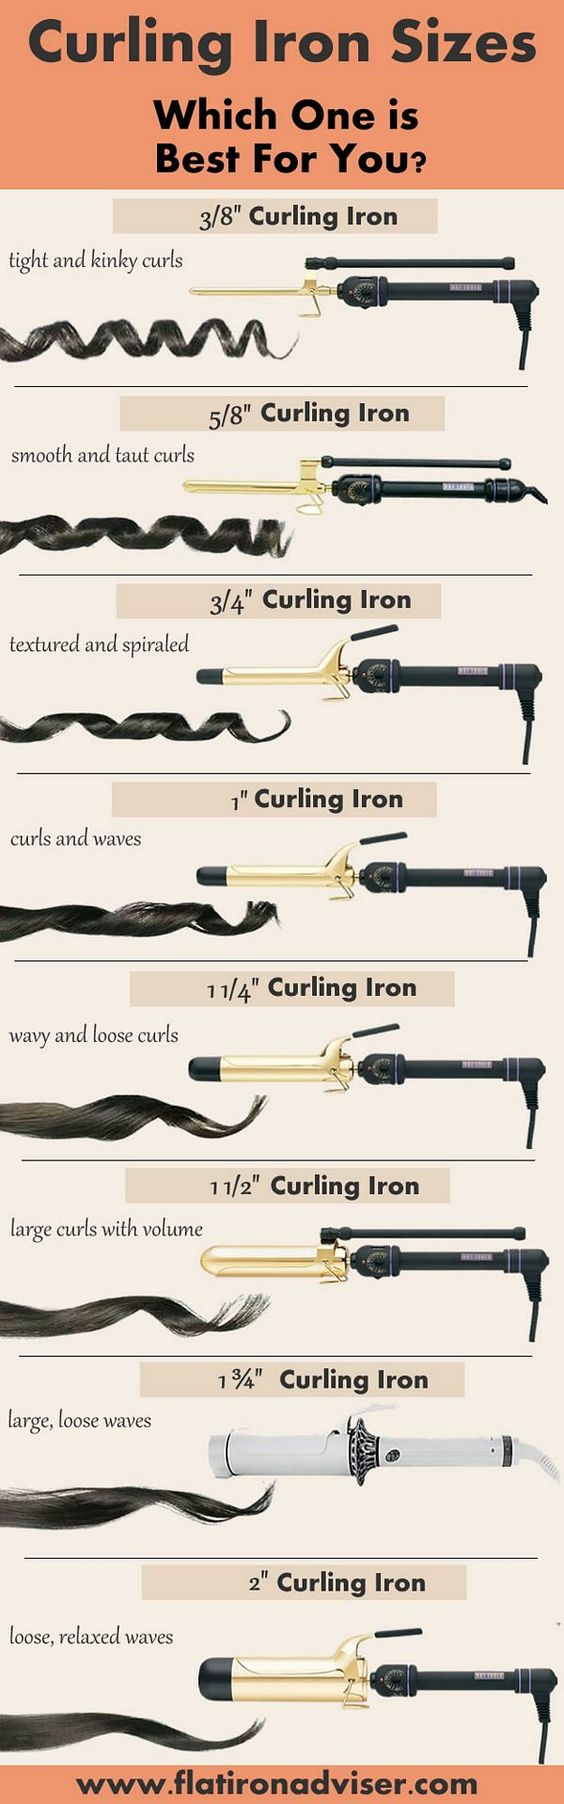 curling iron sizes - which one is best for you